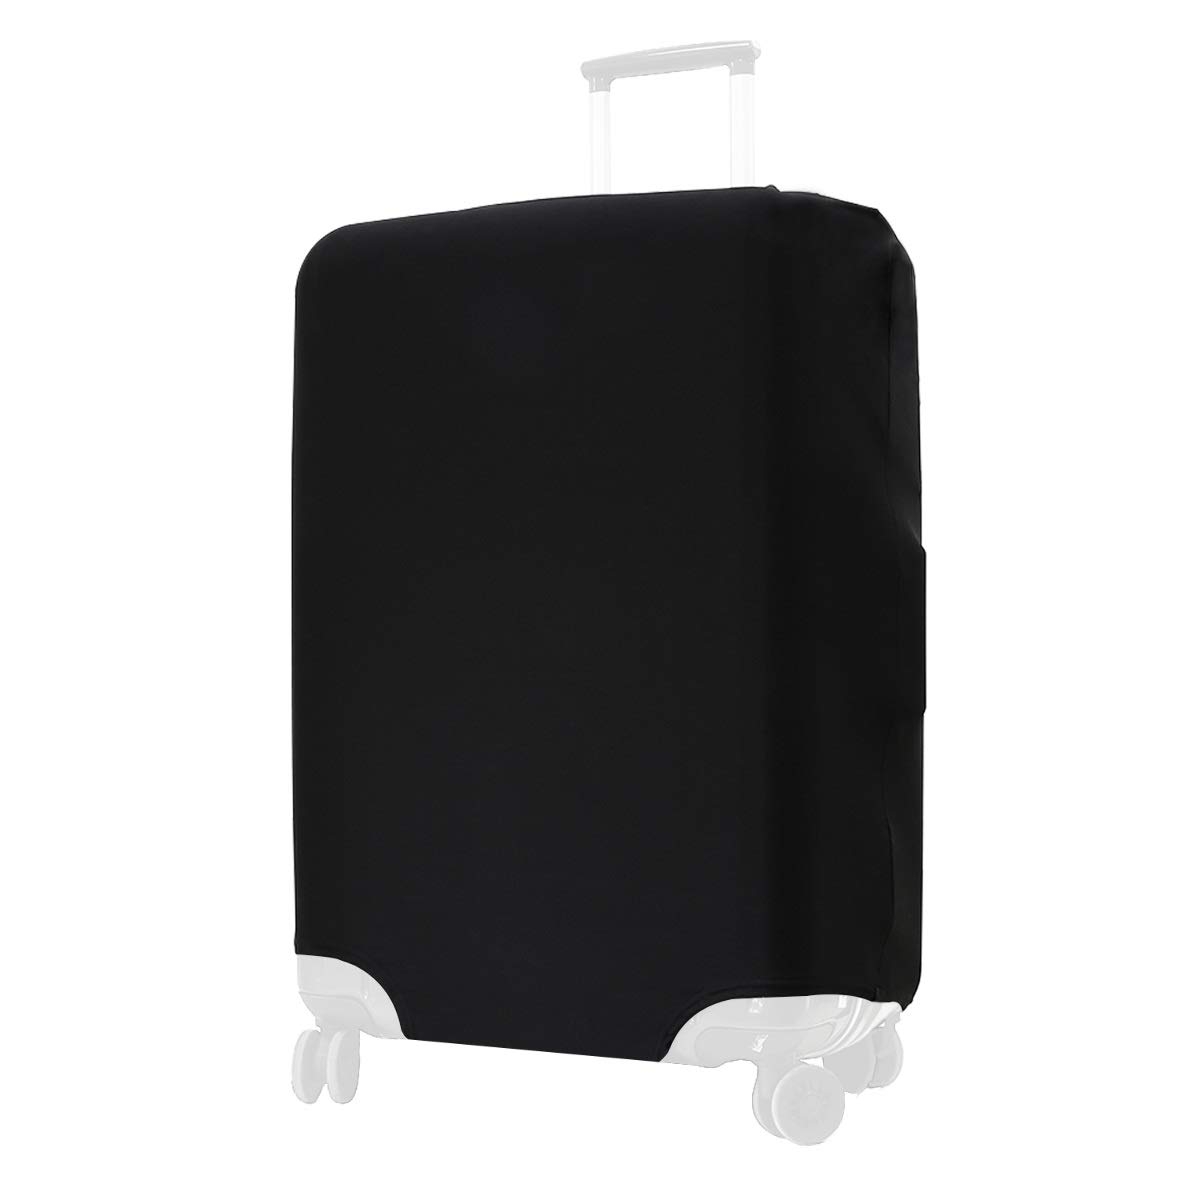 kwmobile Travel Luggage Suitcase Cover - Protective Cover for Carry On Luggage - Spandex Suitcase Protector in Black